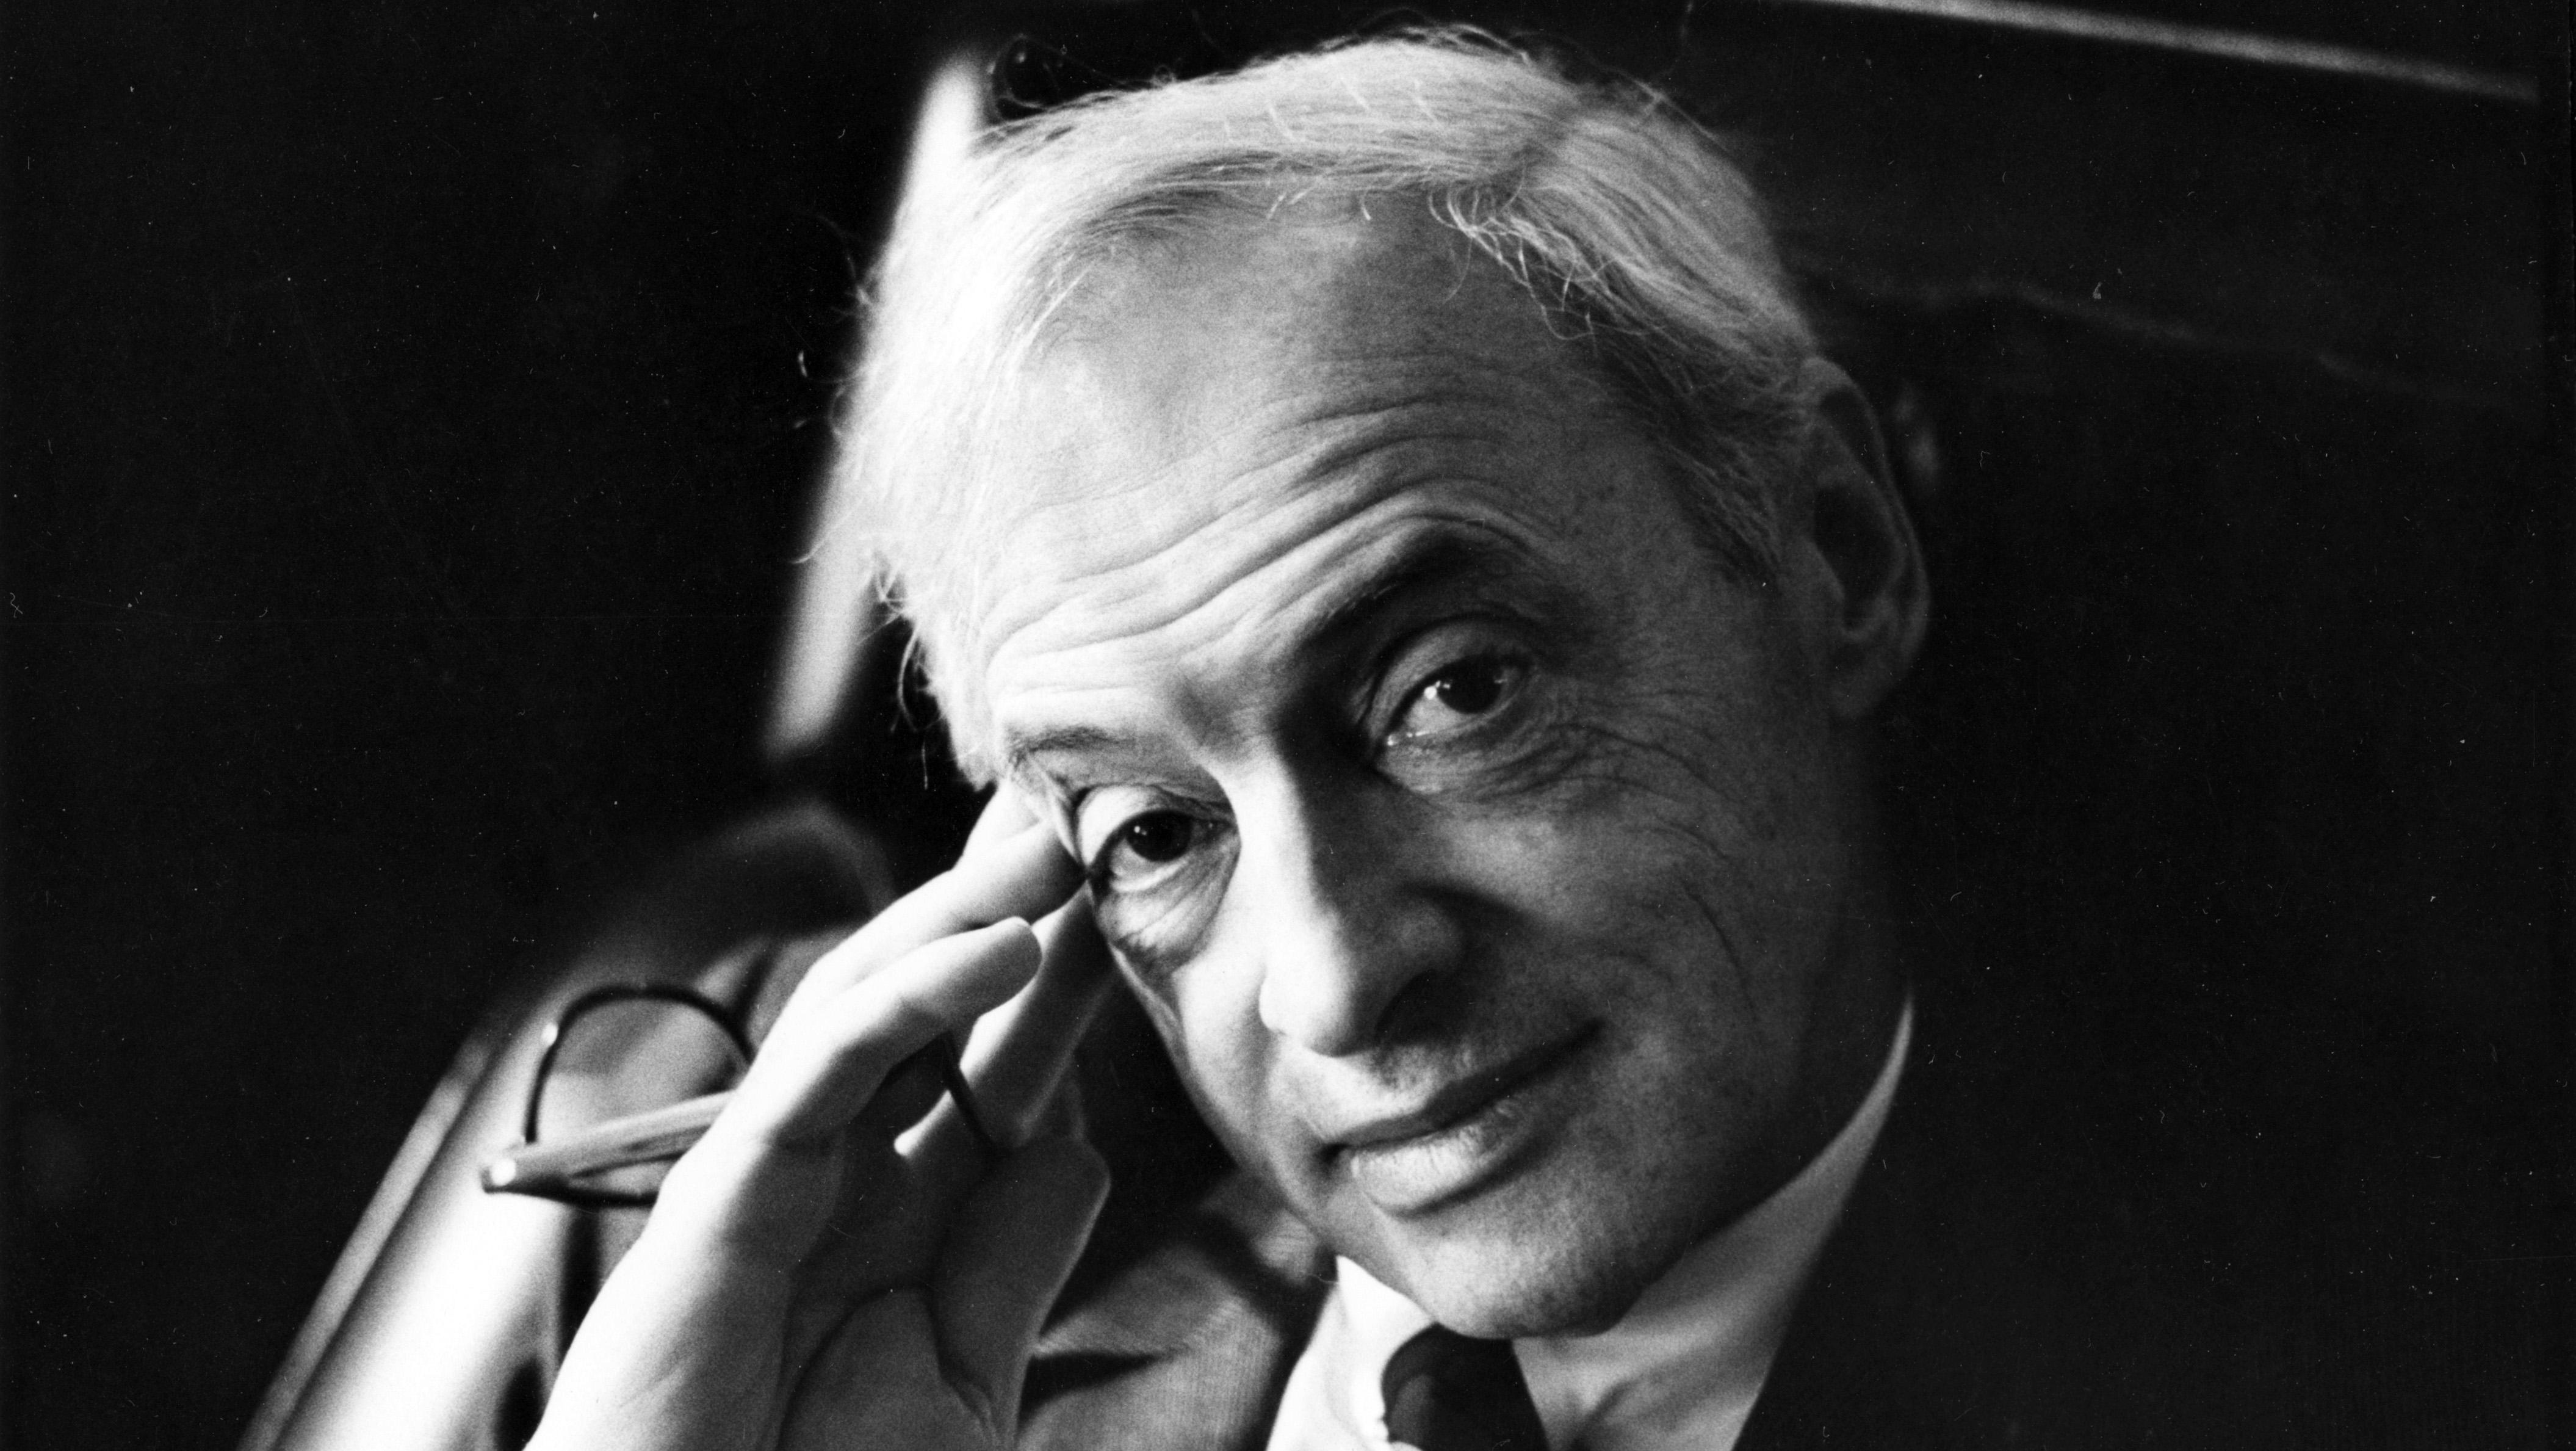 Nobel laureate Saul Bellow's papers are now available at the University of Chicago's library. (Courtesy of University of Chicago Special Collections Research Center)